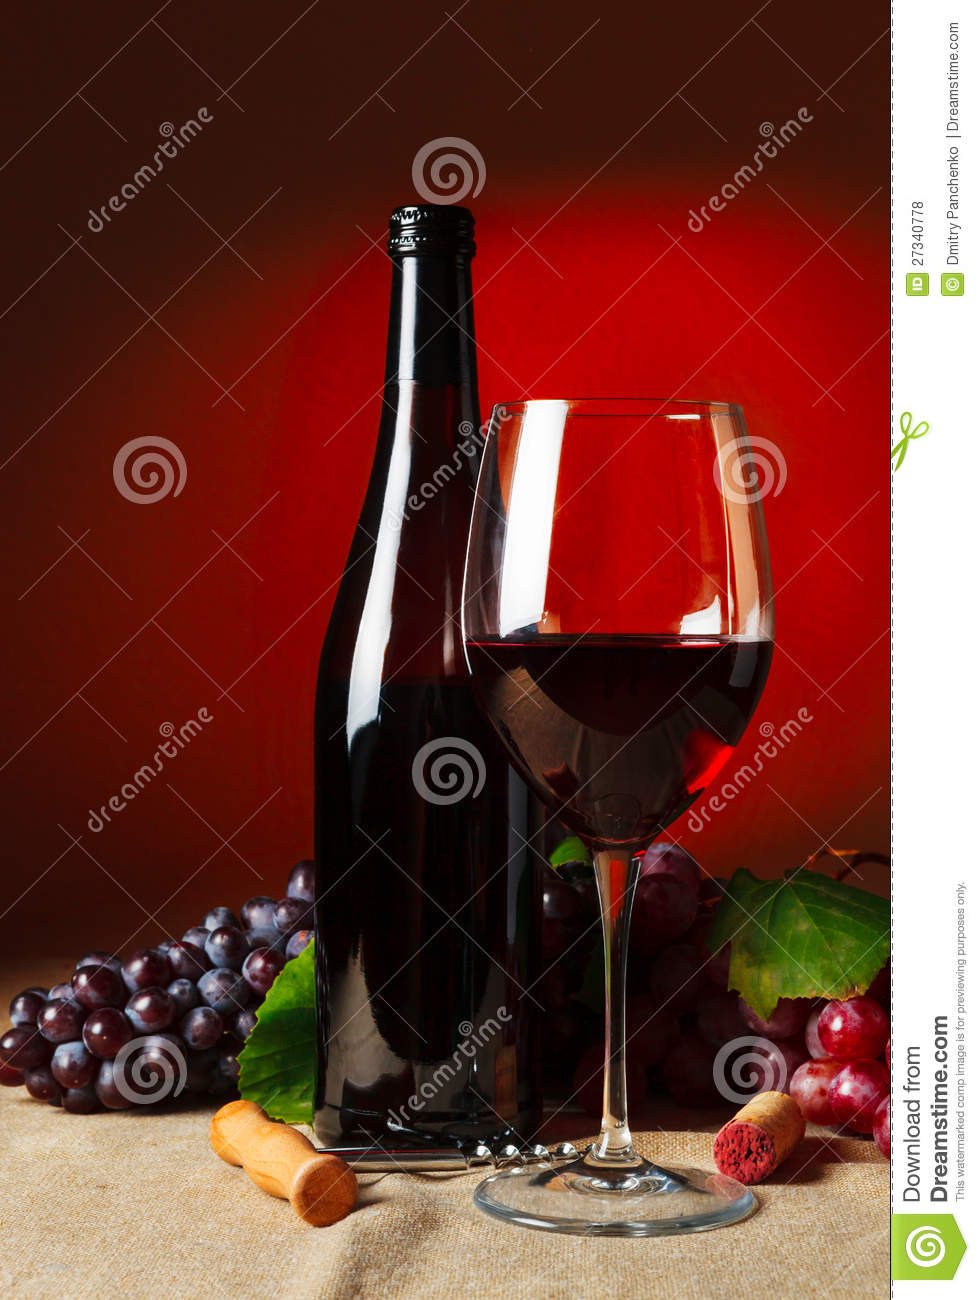 Bottle And Glass Of Red Wine Stock Photo Image 27340778